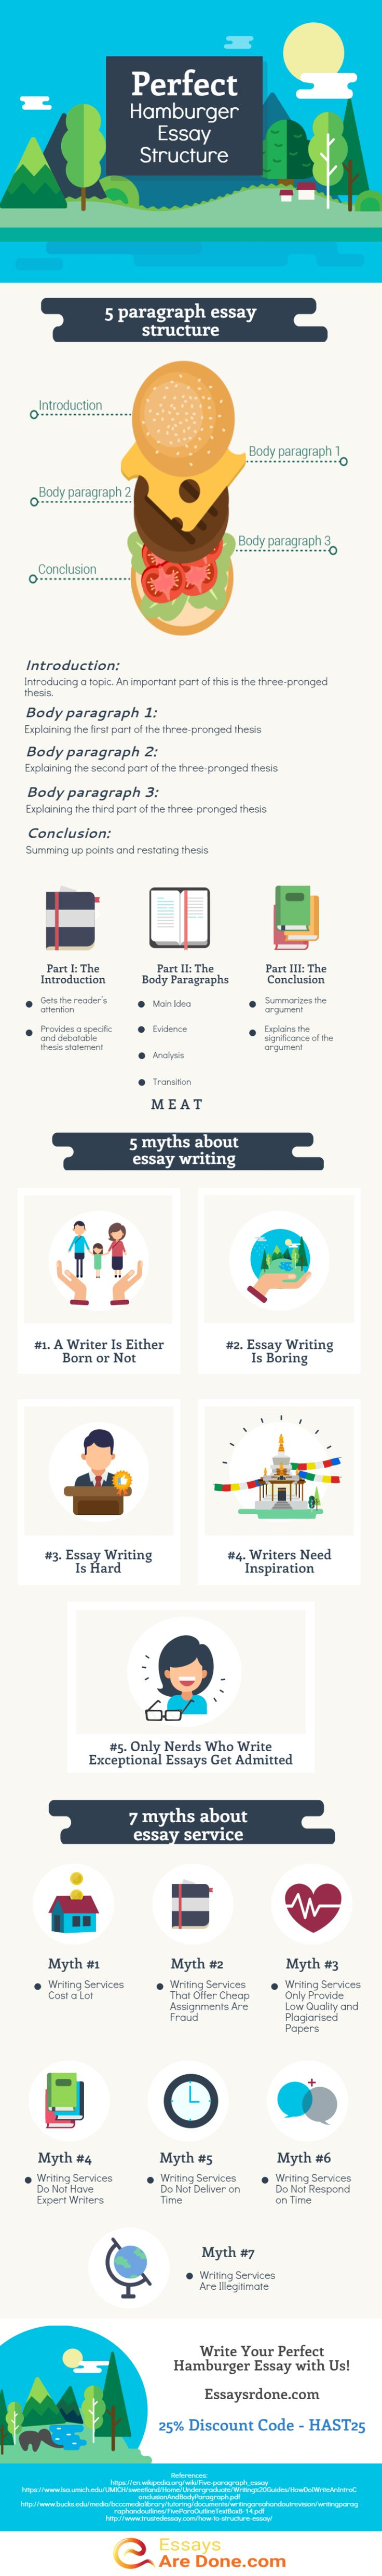 17 best ideas about essay structure essay writing essaysrdone com perfect hamburger essay